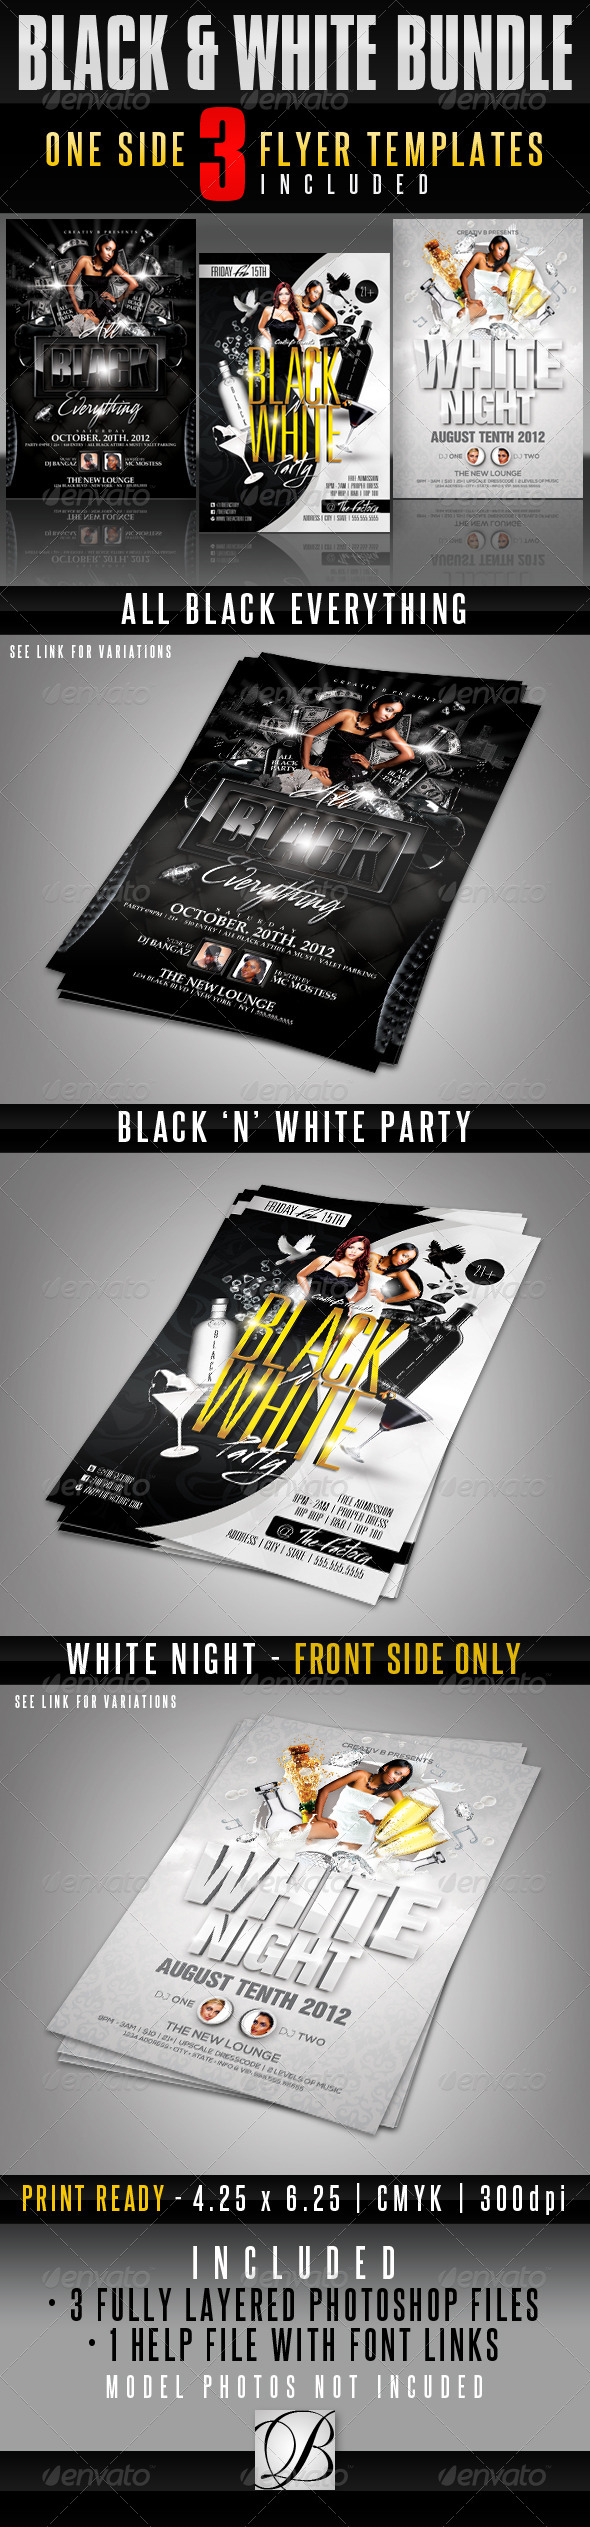 Black and White Party Flyer Bundle - Clubs & Parties Events